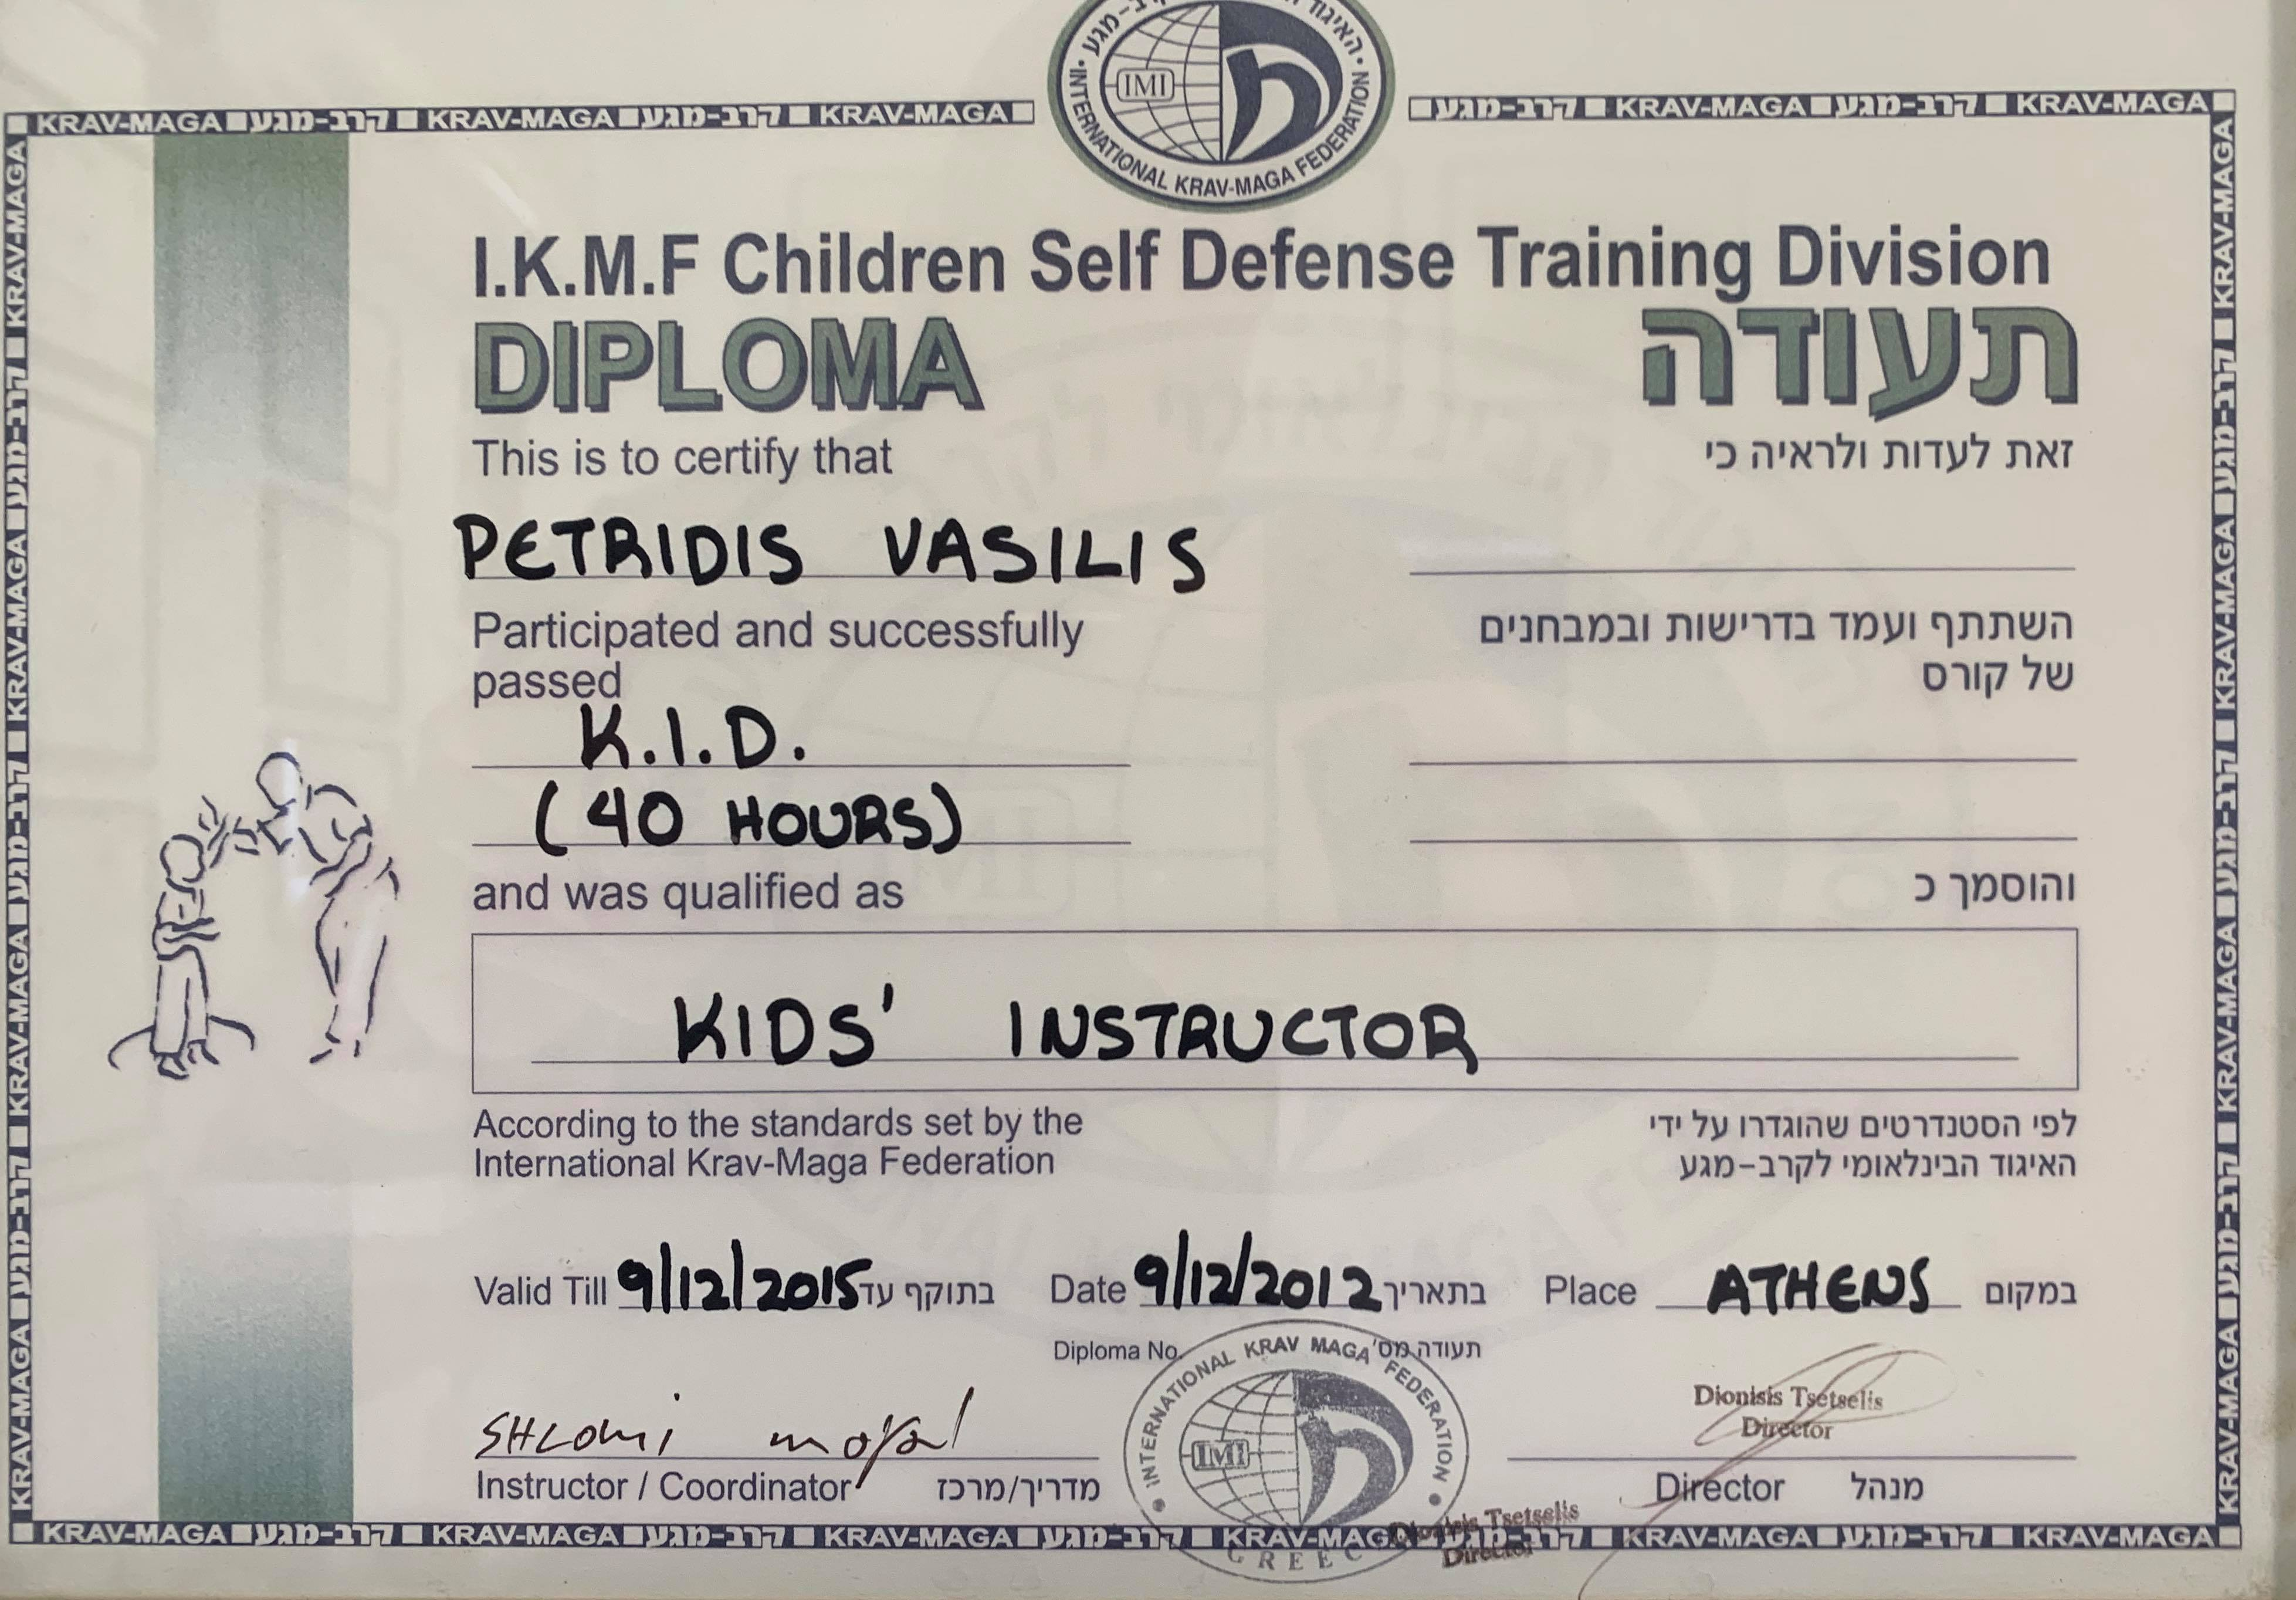 IKMf Kids Krav Maga Instructor